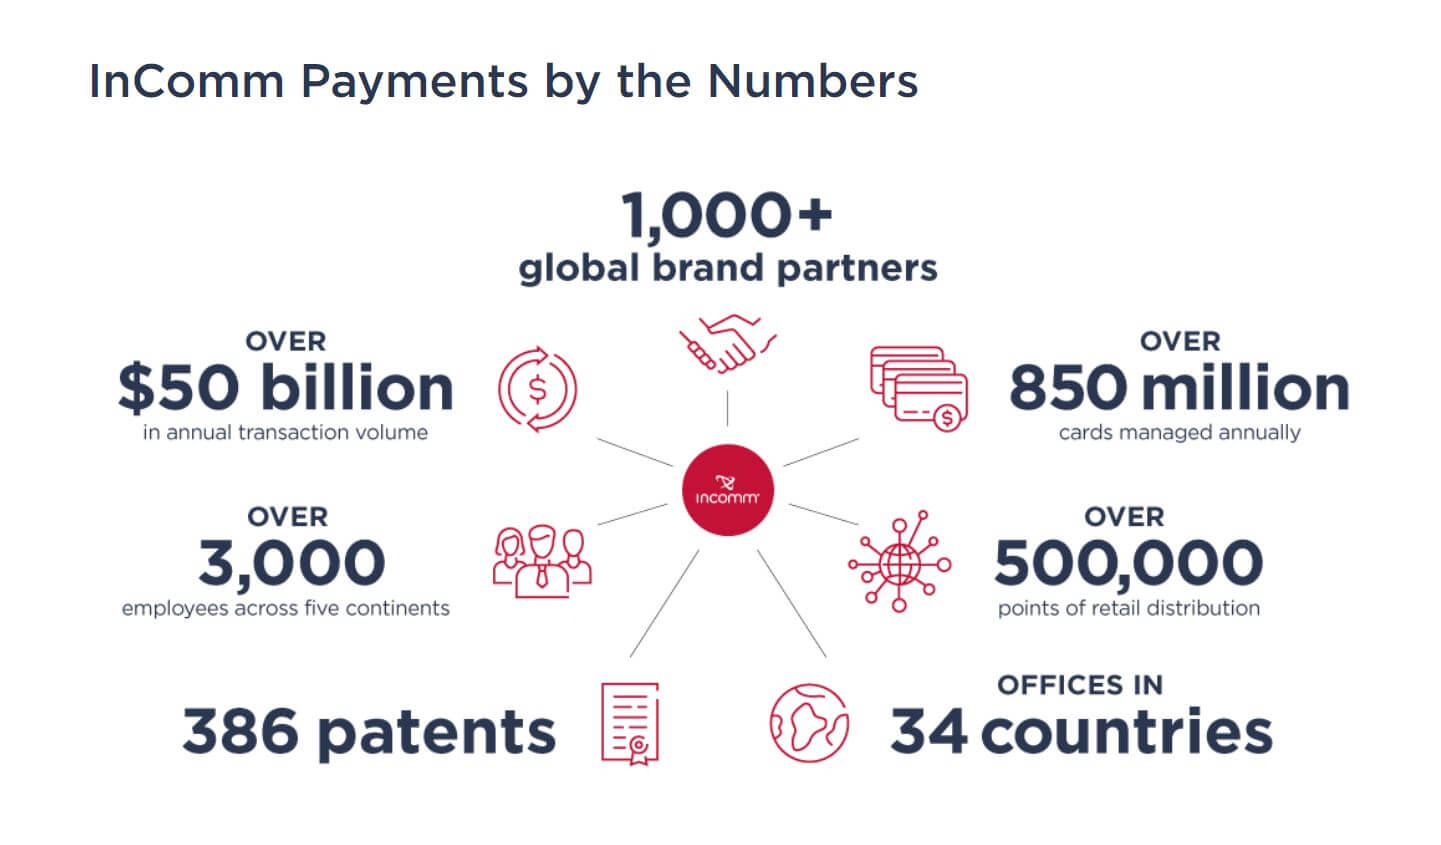 InComm Payments by the Numbers